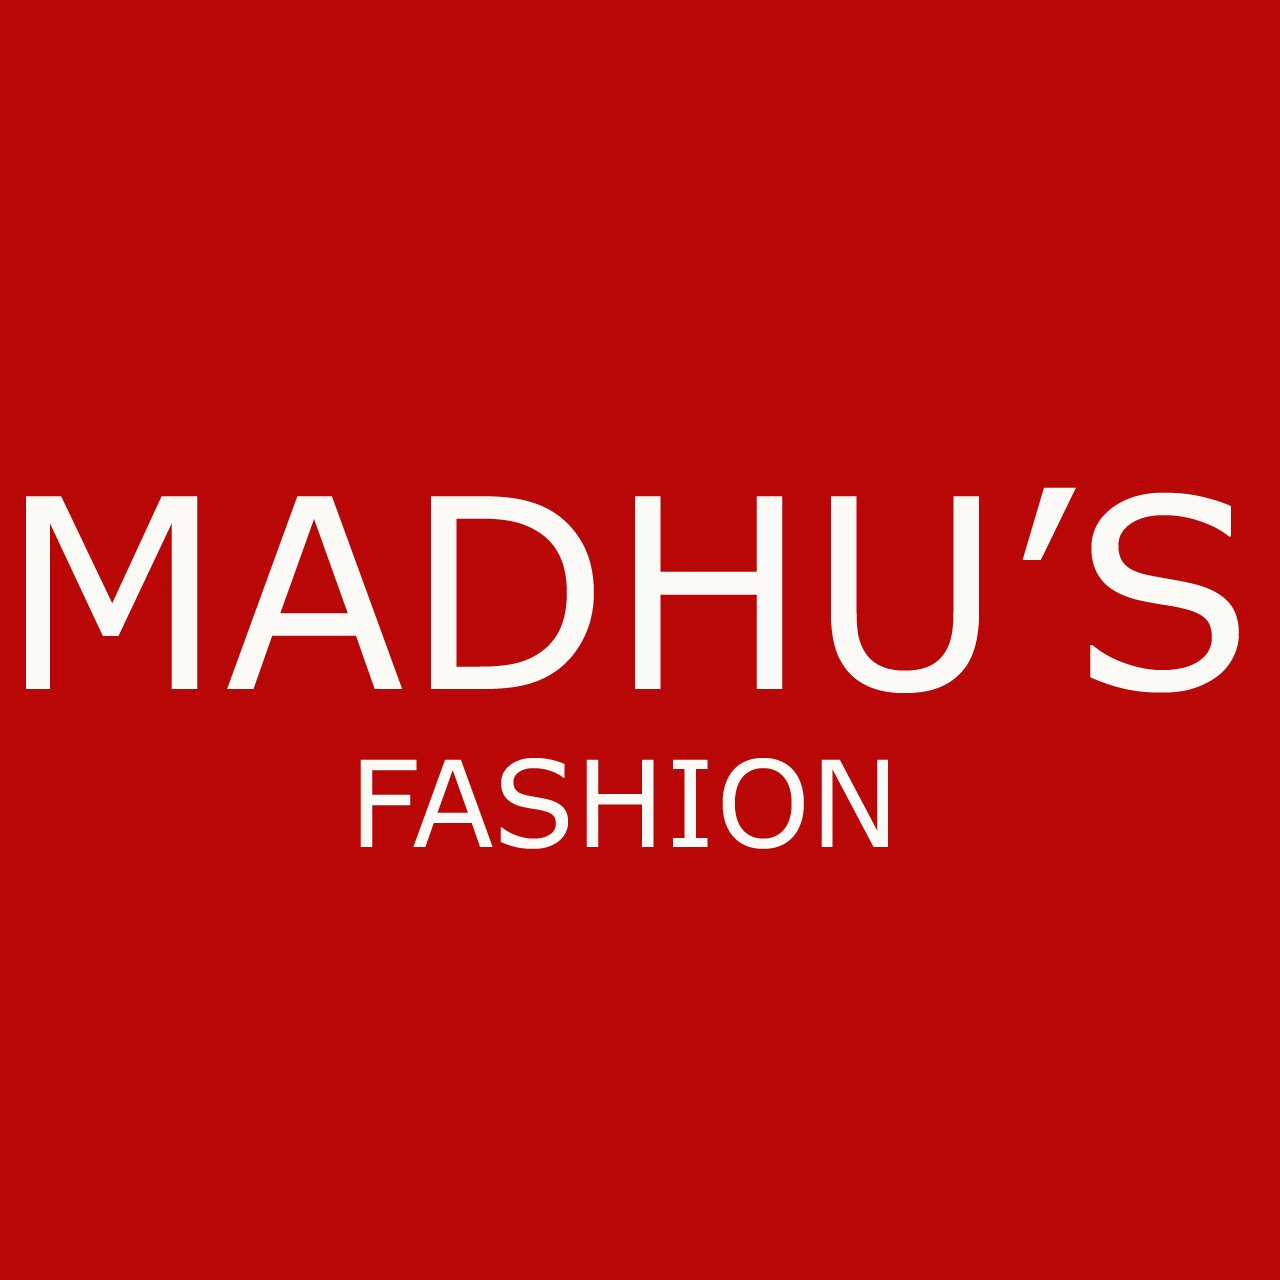 c4f7f84015281a MADHUS FASHION on Twitter: